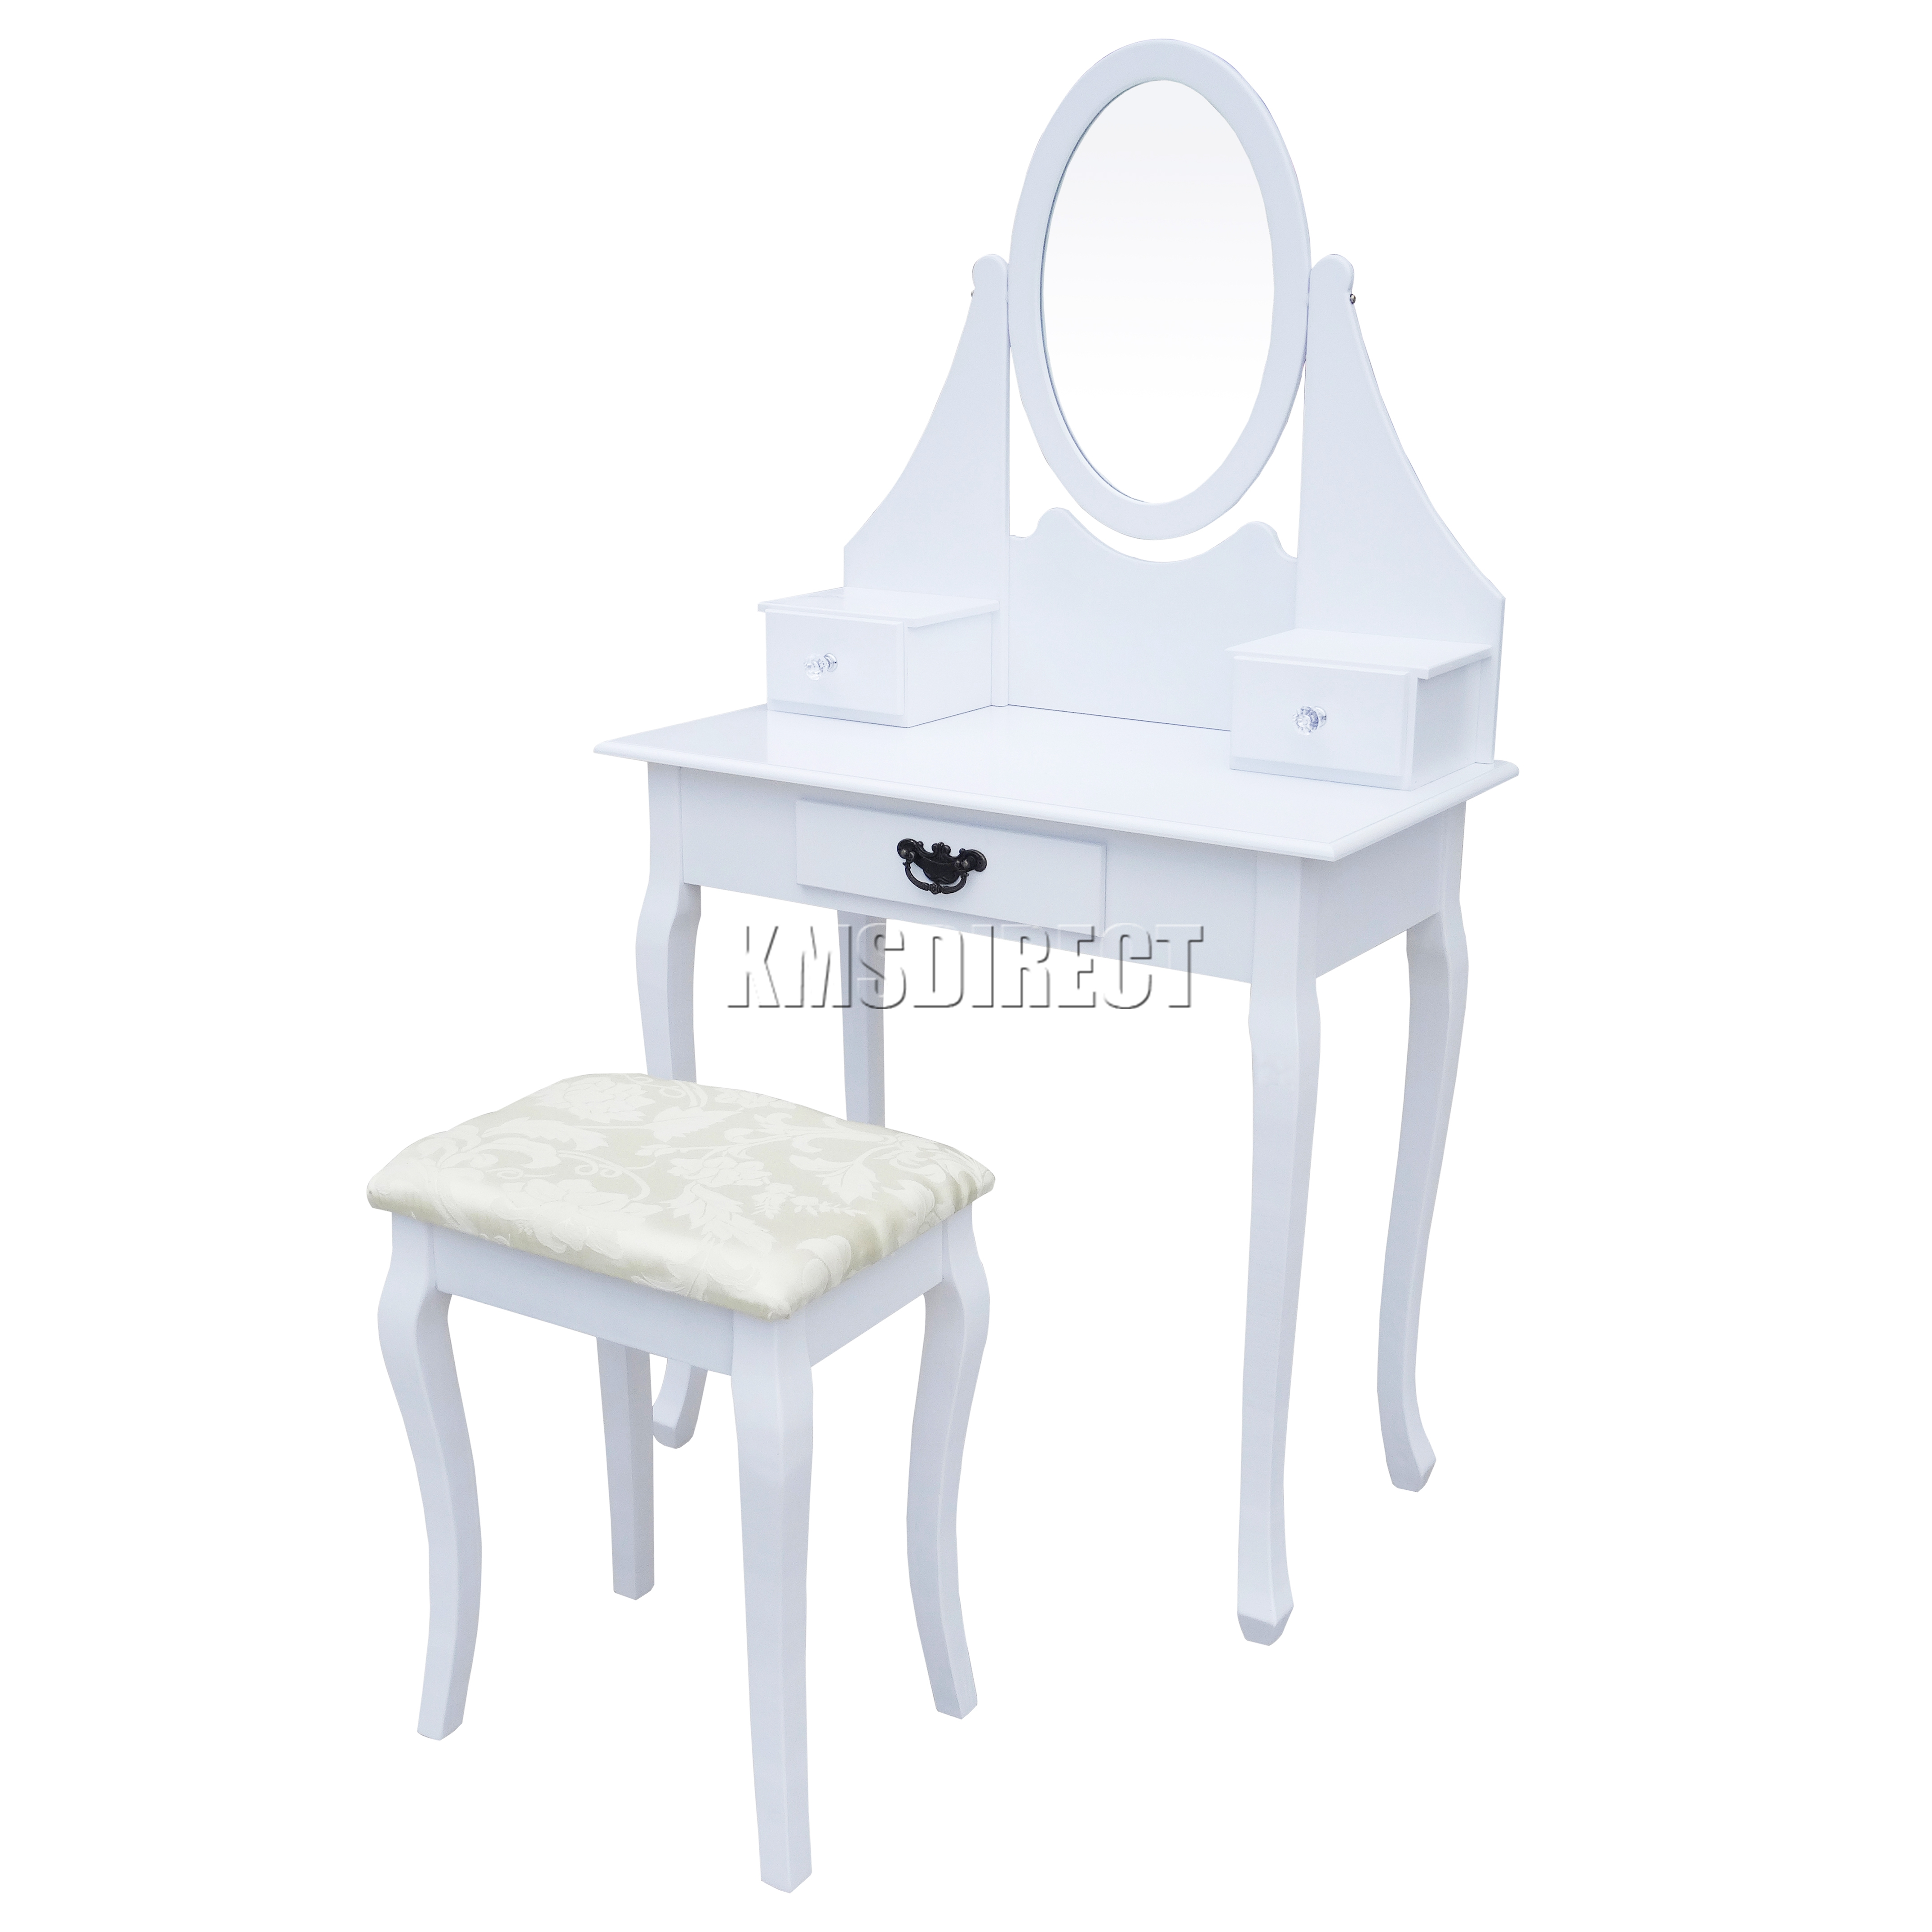 Wonderful image of  Makeup Dressing Table Set With Stool 3 Drawer Mirror Jewelry Desk Wood with #576674 color and 4300x4300 pixels